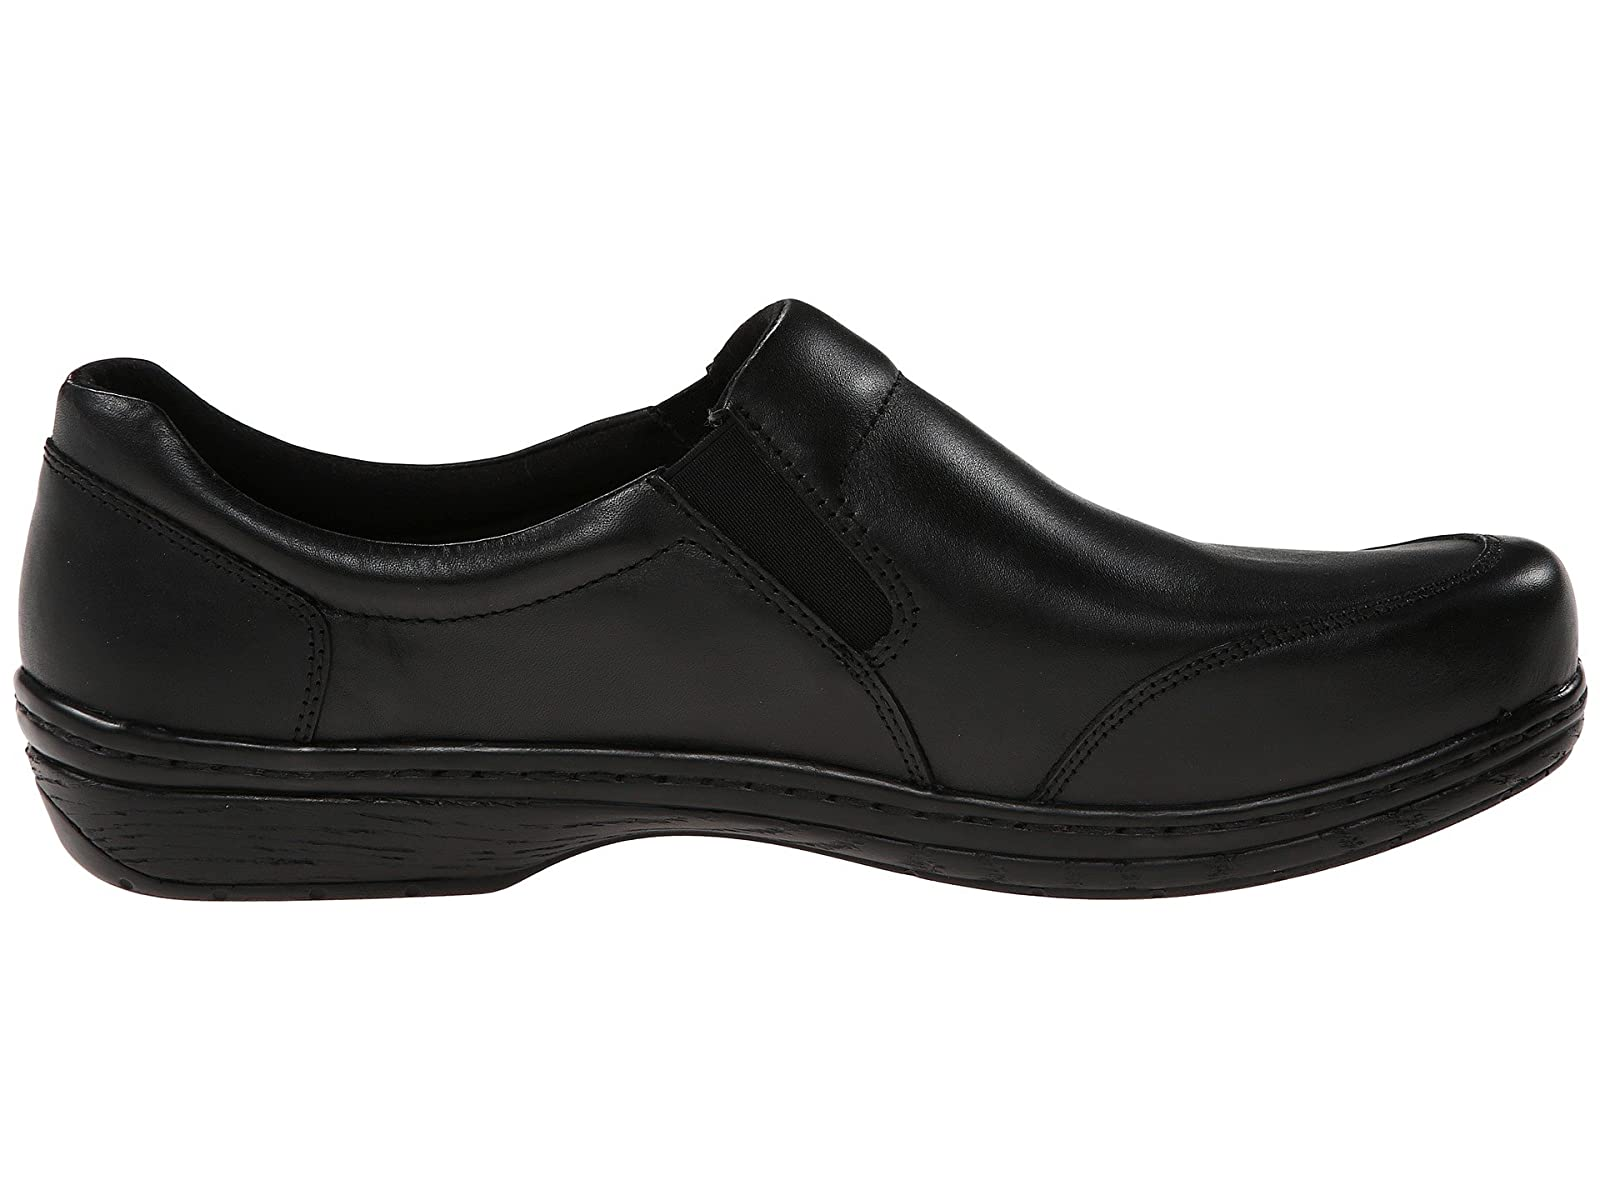 Men's/Women's Men's/Women's Men's/Women's Klogs Footwear Arbor  Up-to-date styling 68441c